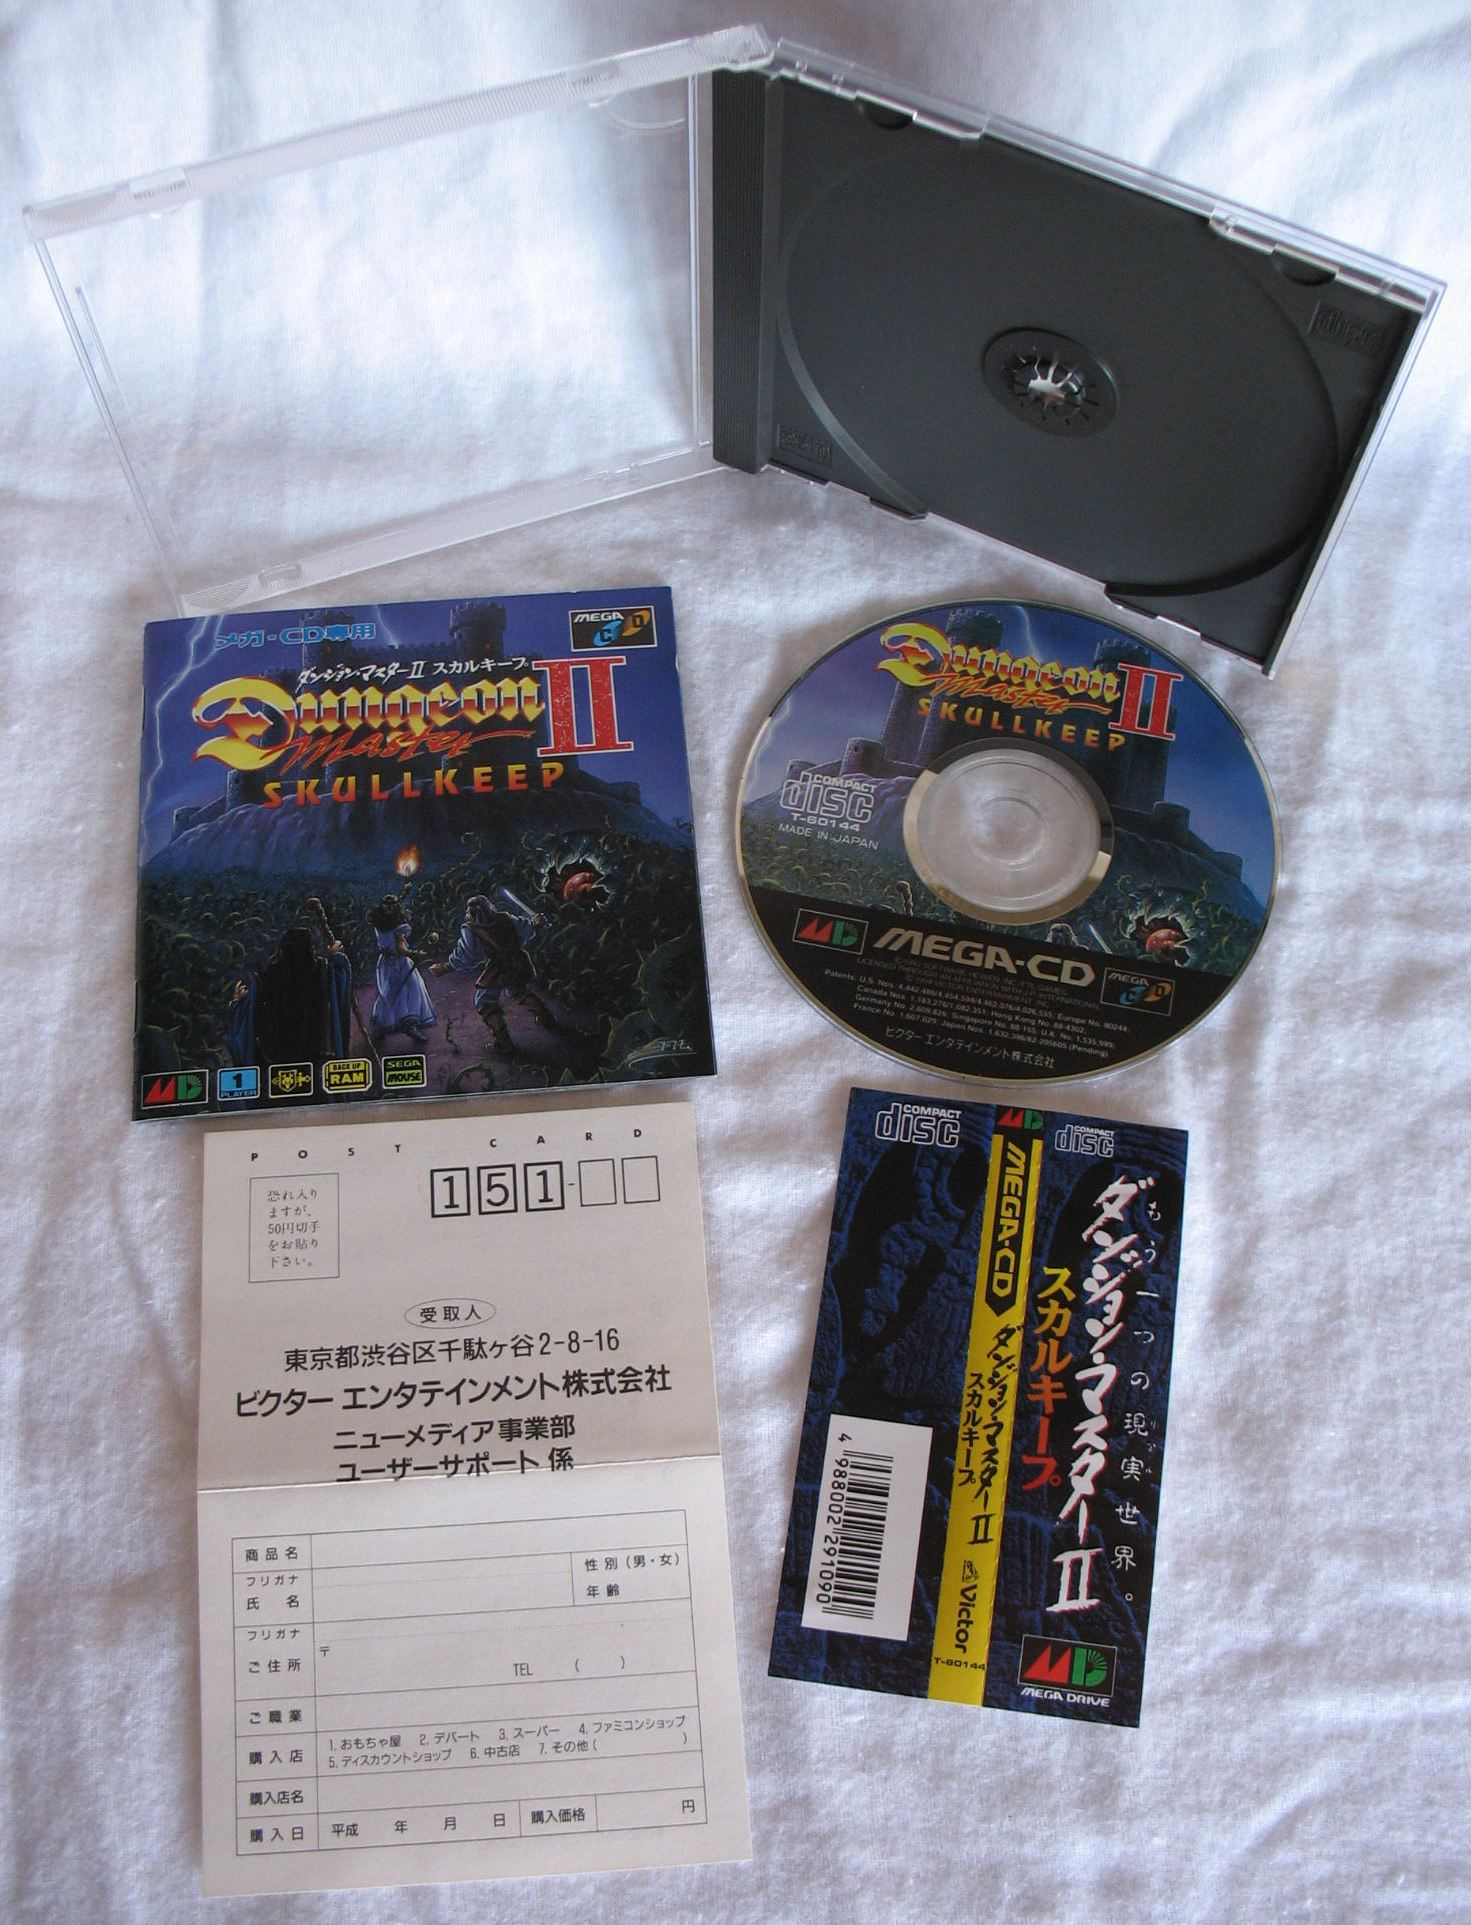 Game - Dungeon Master II - JP - Mega CD - All - Overview - Photo